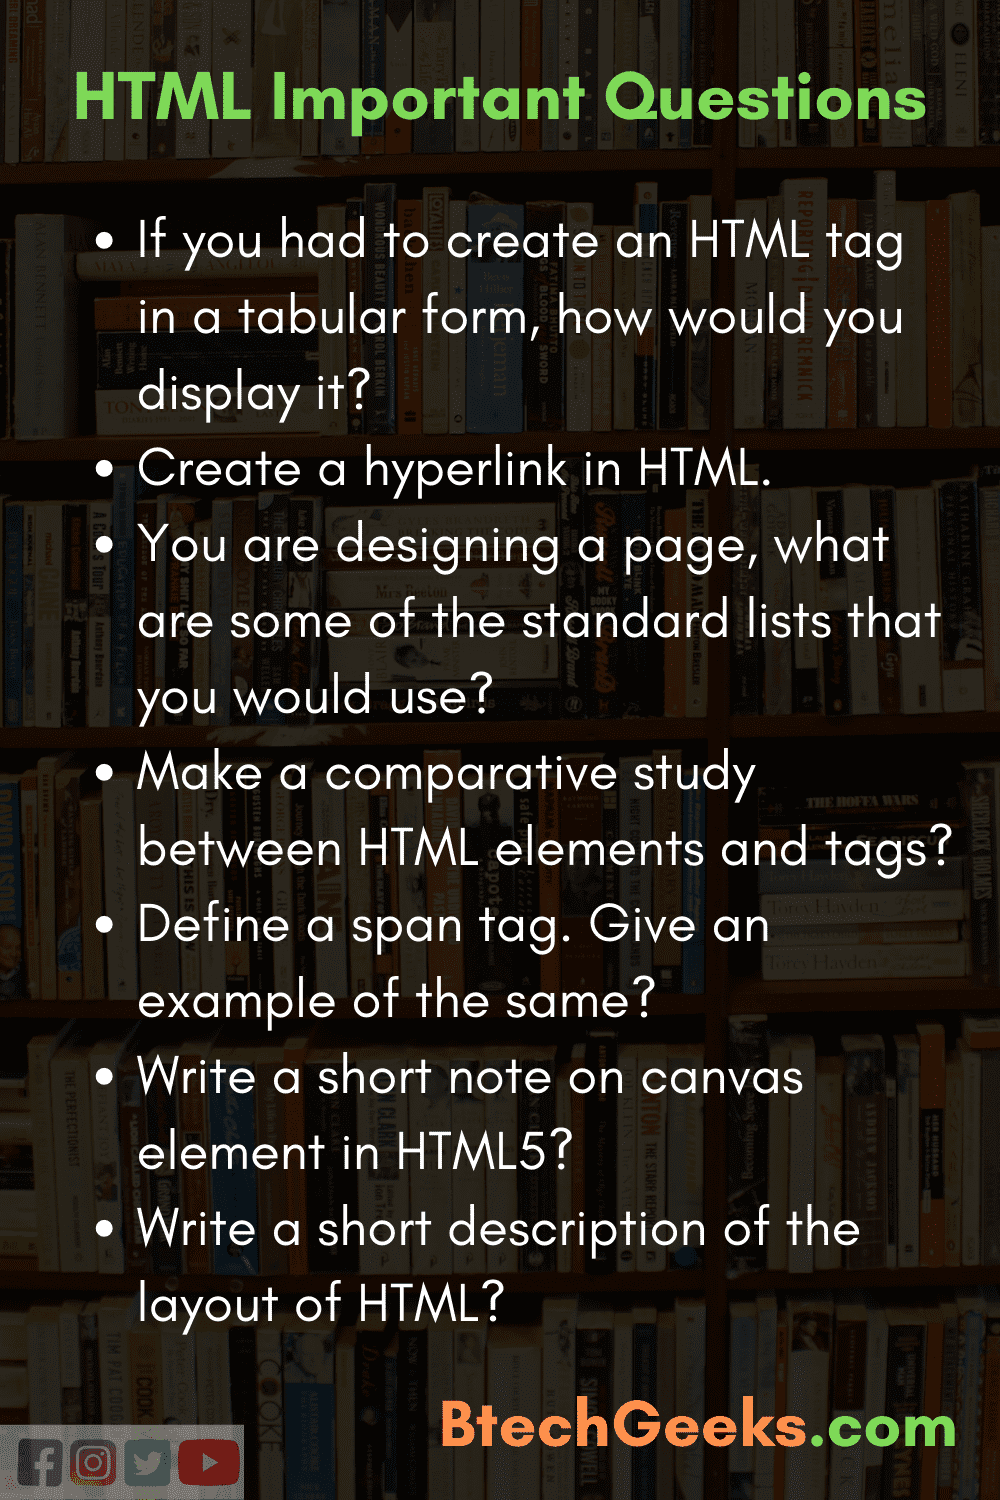 HTML Important Questions